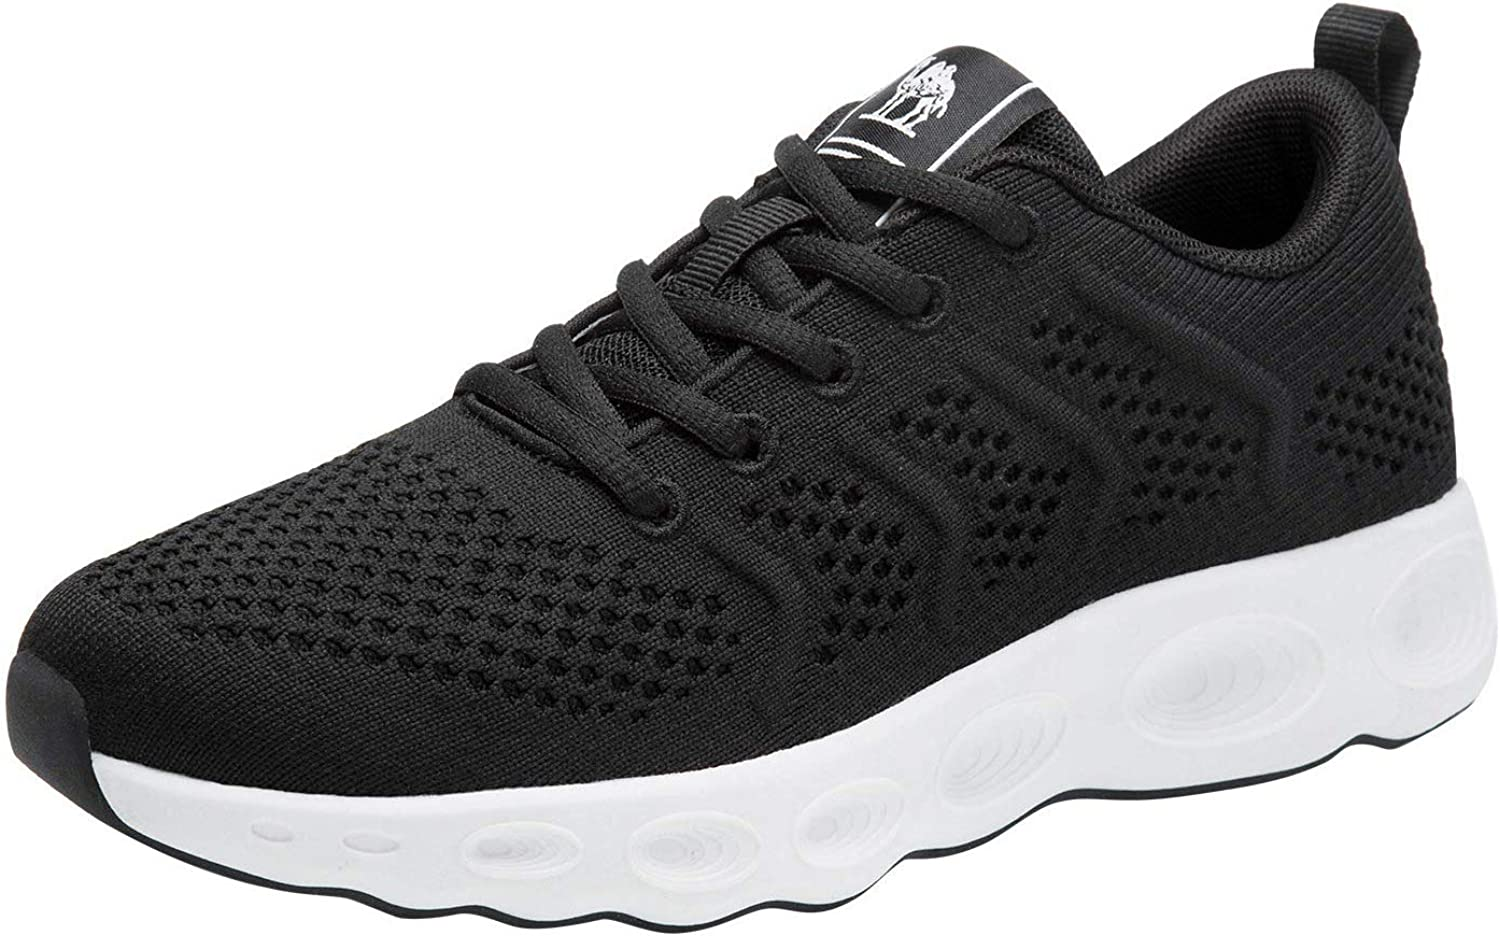 CAMEL CROWN Running Shoes Women Tennis Walking Trainning Trail Lightweight Comfortable Sneakers Athletic Gym Casual Footwear for Sports Outdoors Black White 9